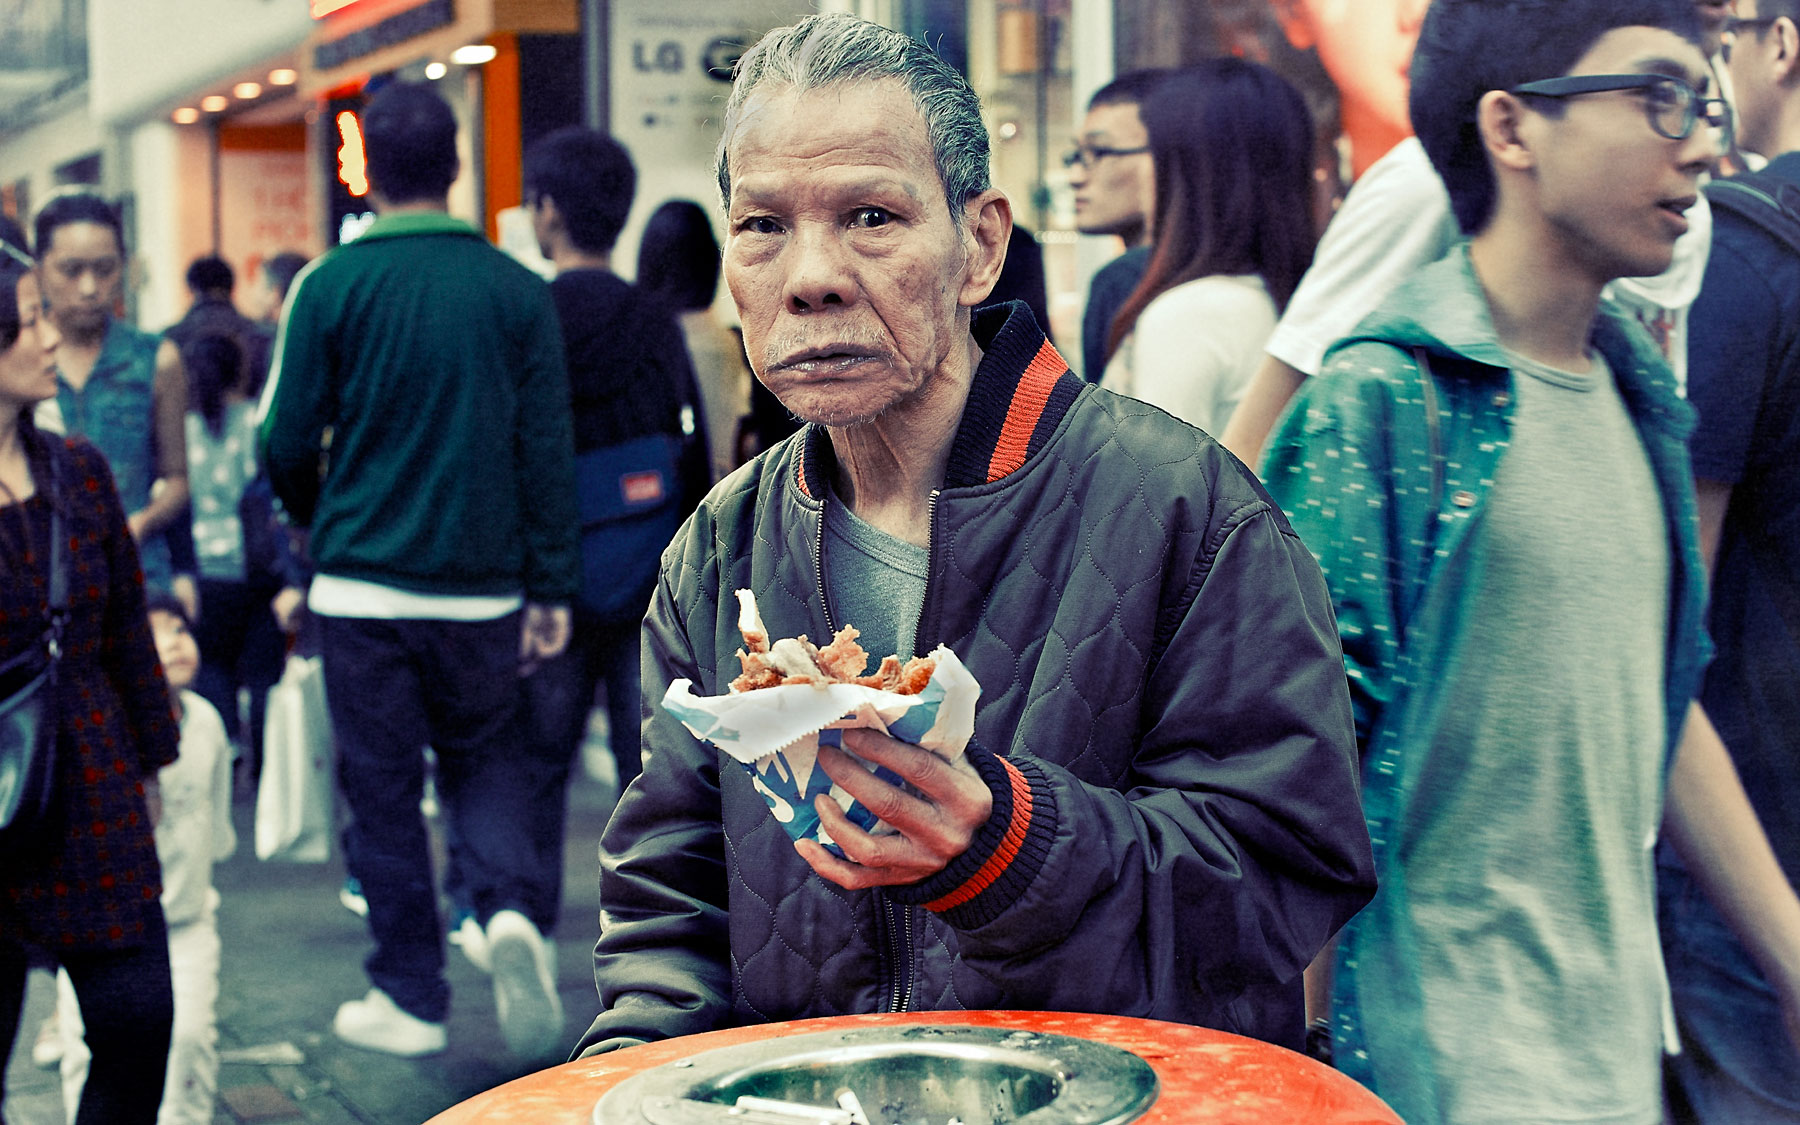 Good Boy Wolf Photographer, filmic portrait, Chinese man eating food out of the bin